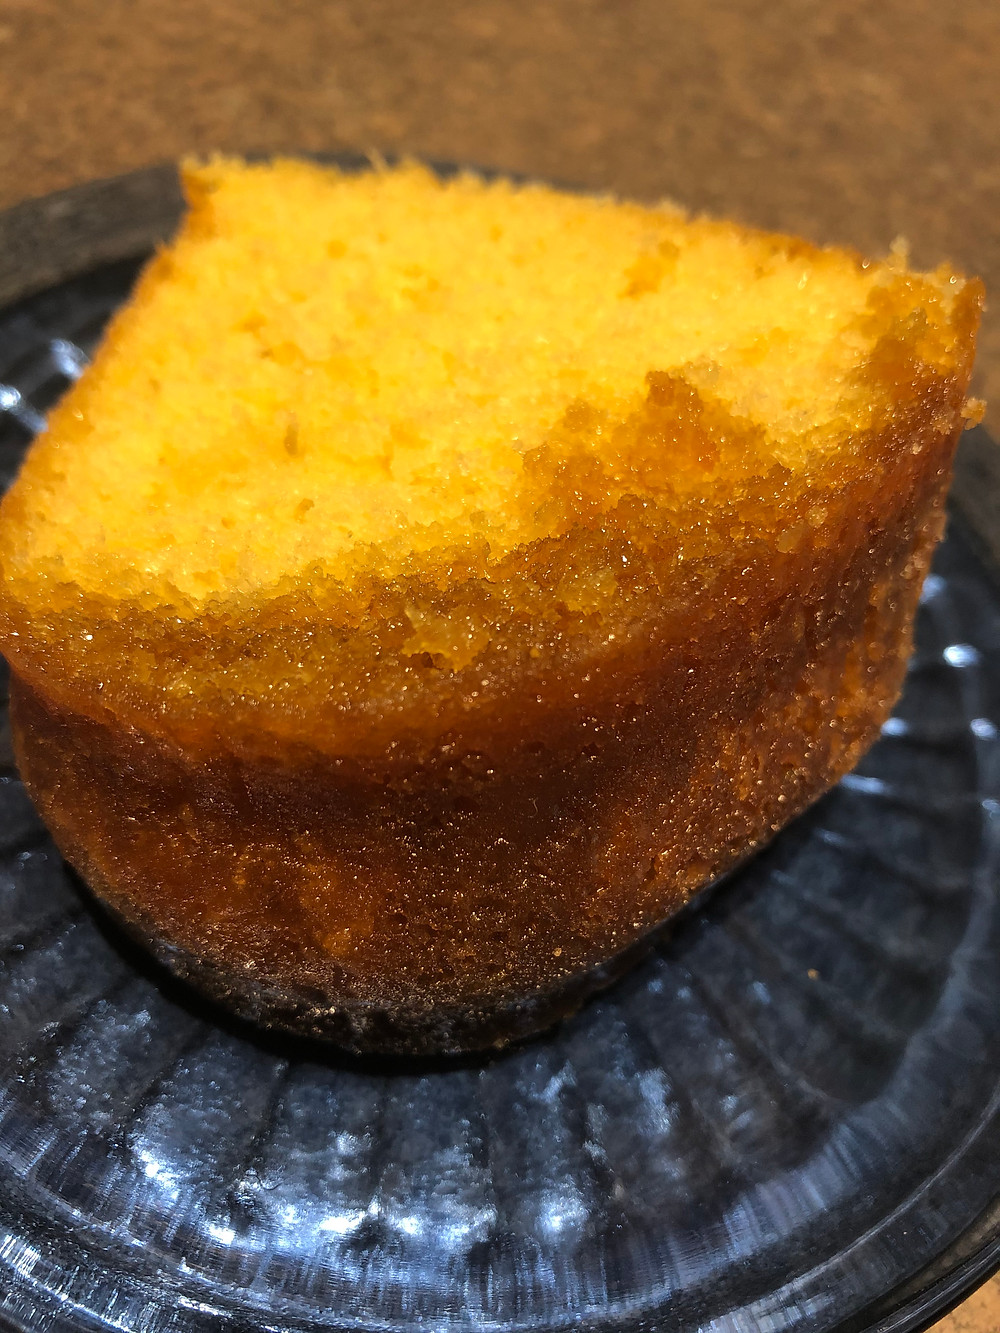 A yellow cake with brown glazed crust sits on a blue tinted plate, ready to eat.